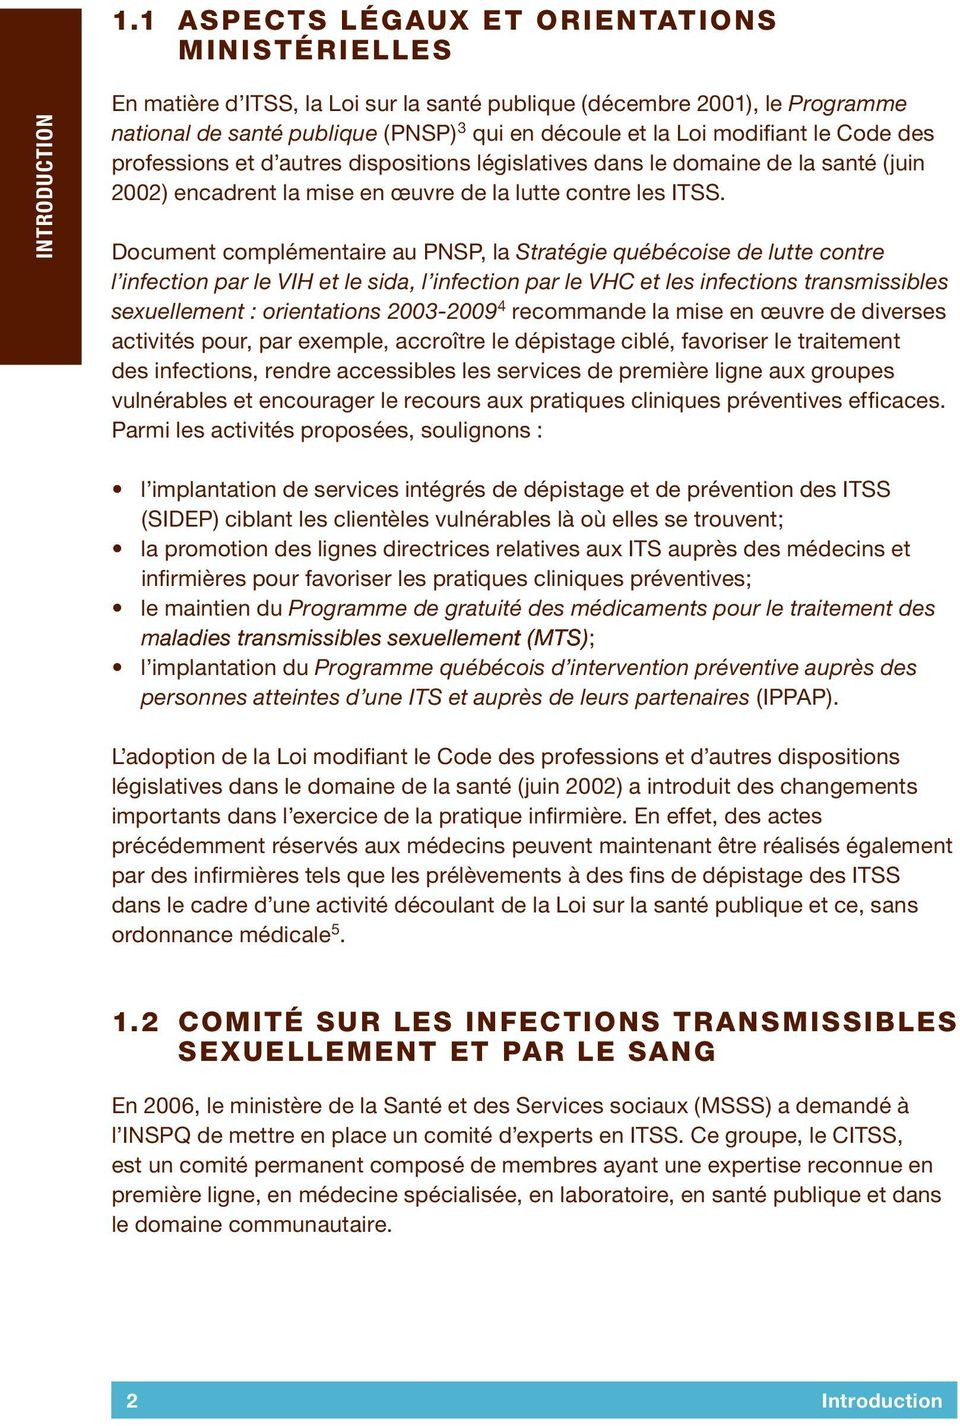 Document complémentaire au PNSP, la Stratégie québécoise de lutte contre l infection par le VIH et le sida, l infection par le VHC et les infections transmissibles sexuellement : orientations